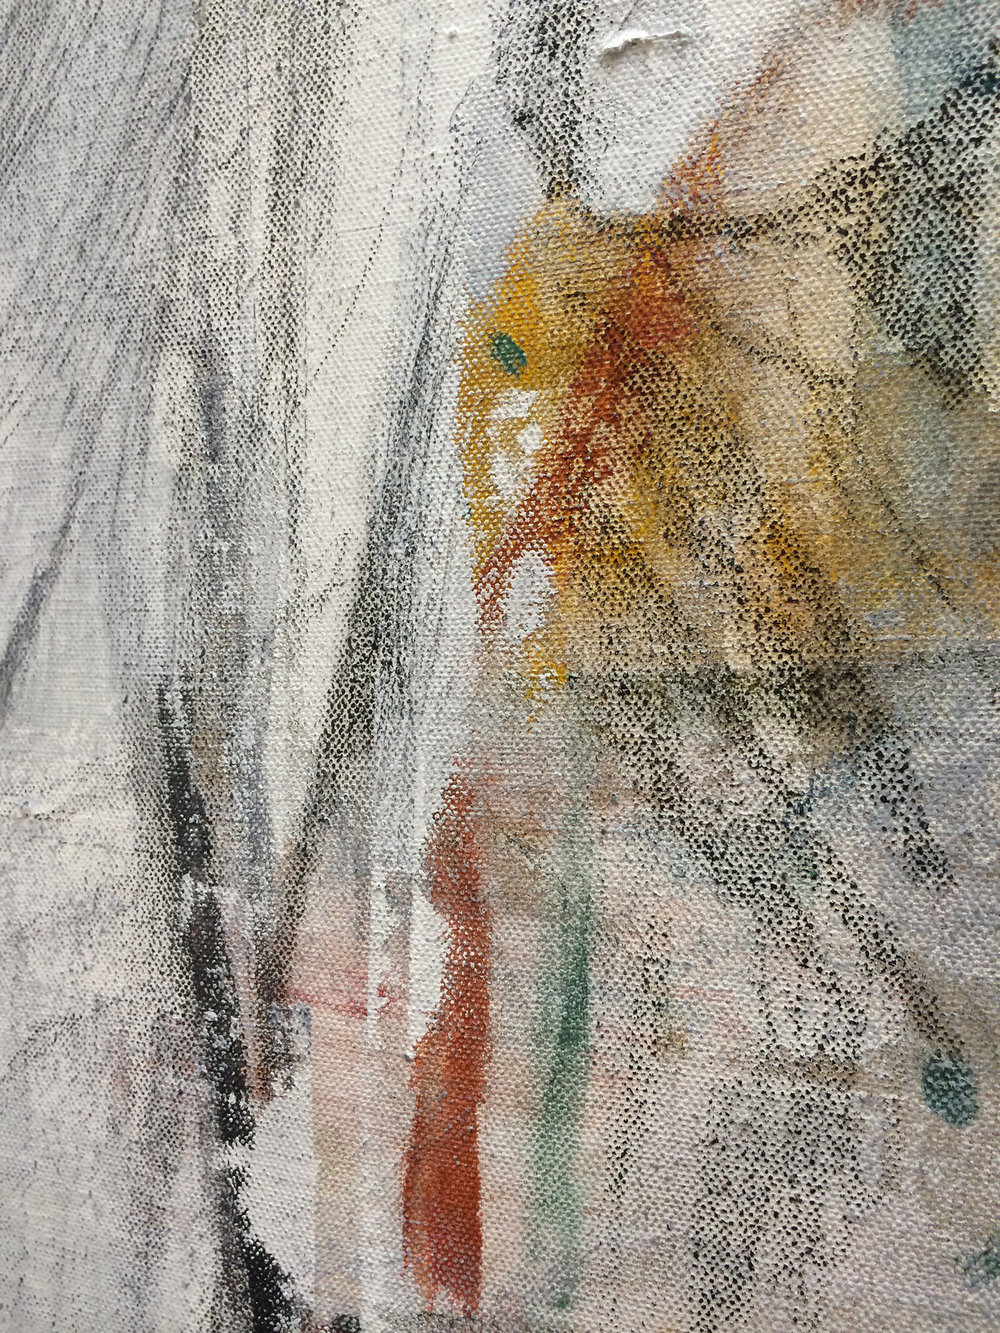 "TED GAHL  (detail)  Mosquito , 2015, oil, acrylic, graphite and colord pencil on canvas, 36"" x 24"""